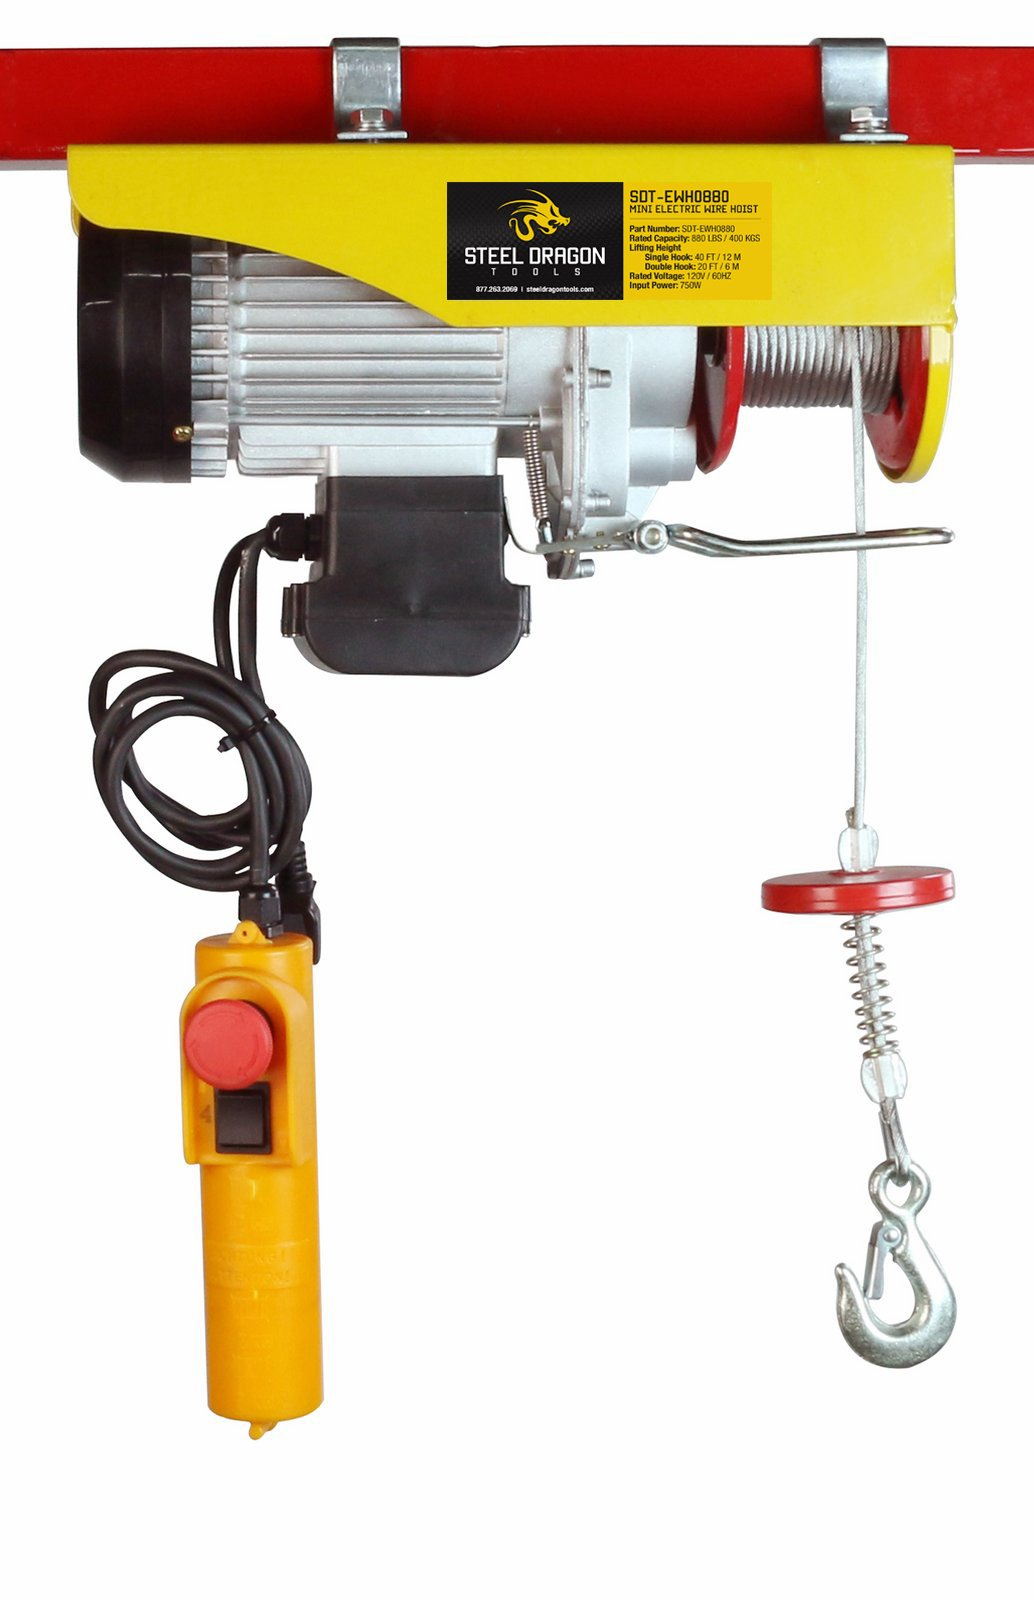 Steel Dragon Tools 880 LBS Mini Electric Wire Cable Hoist Overhead Crane Lift with Remote Control